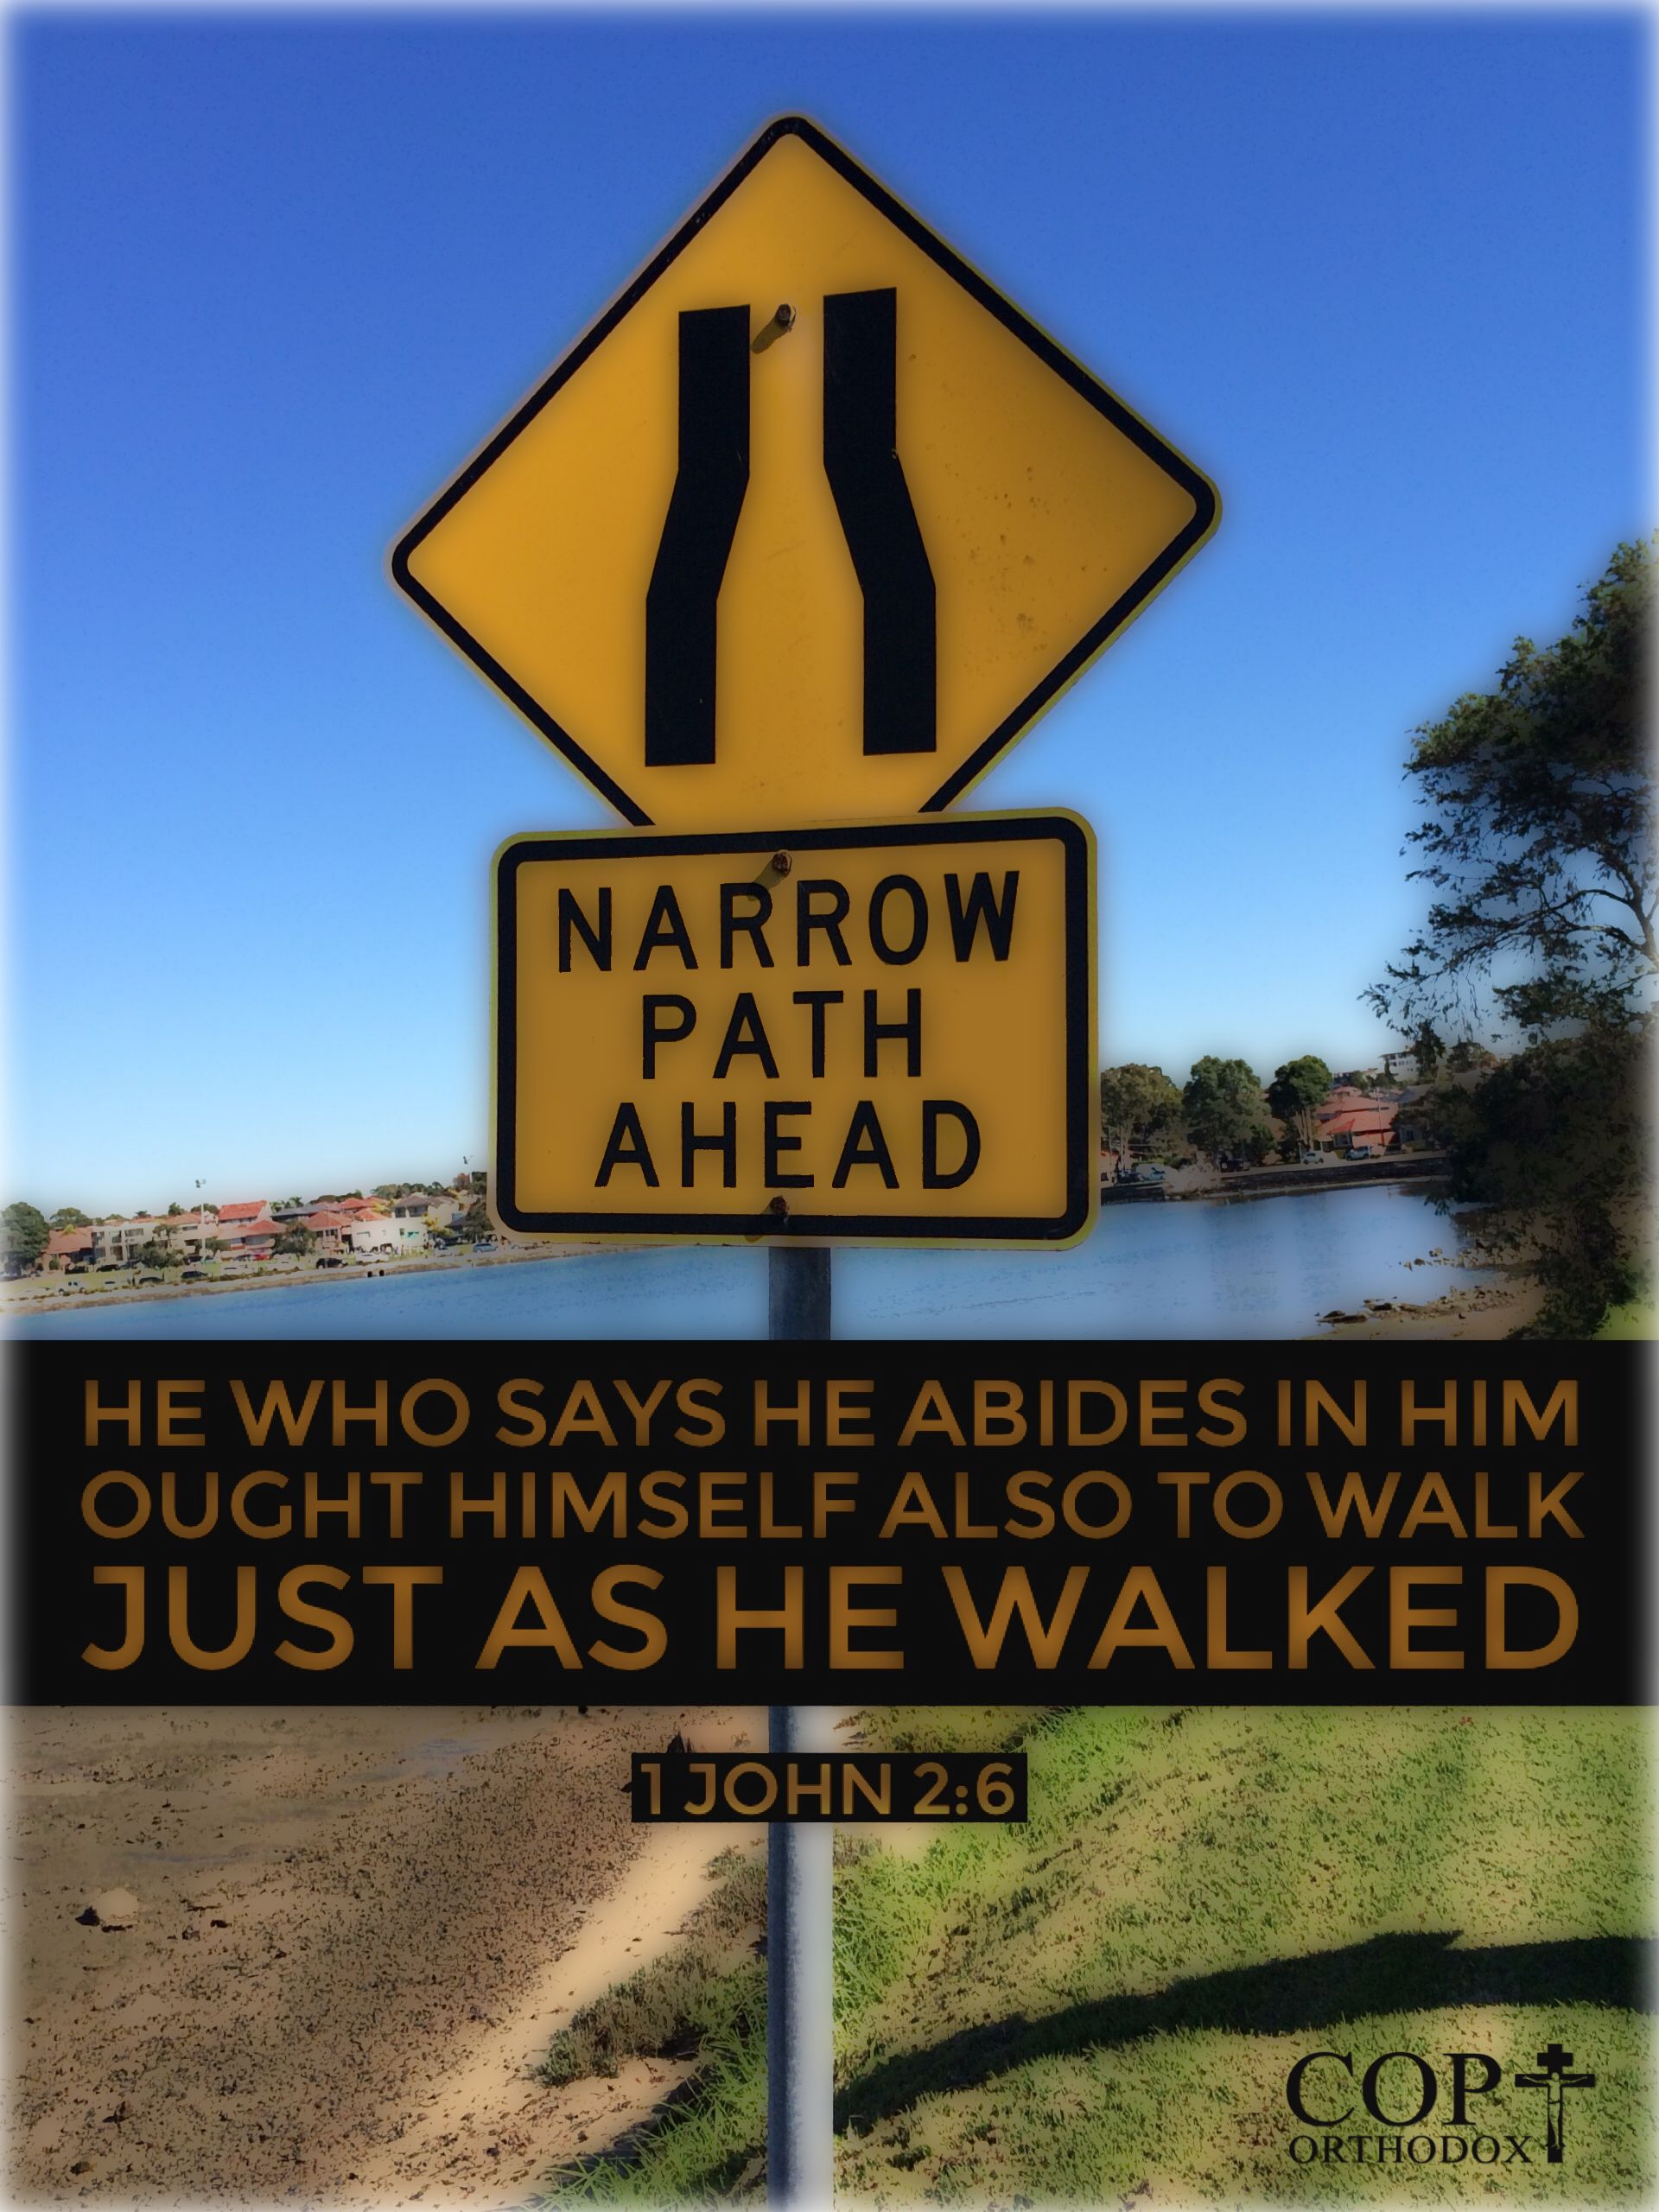 1john 2 6 he who says he abides in him ought himself also to walk